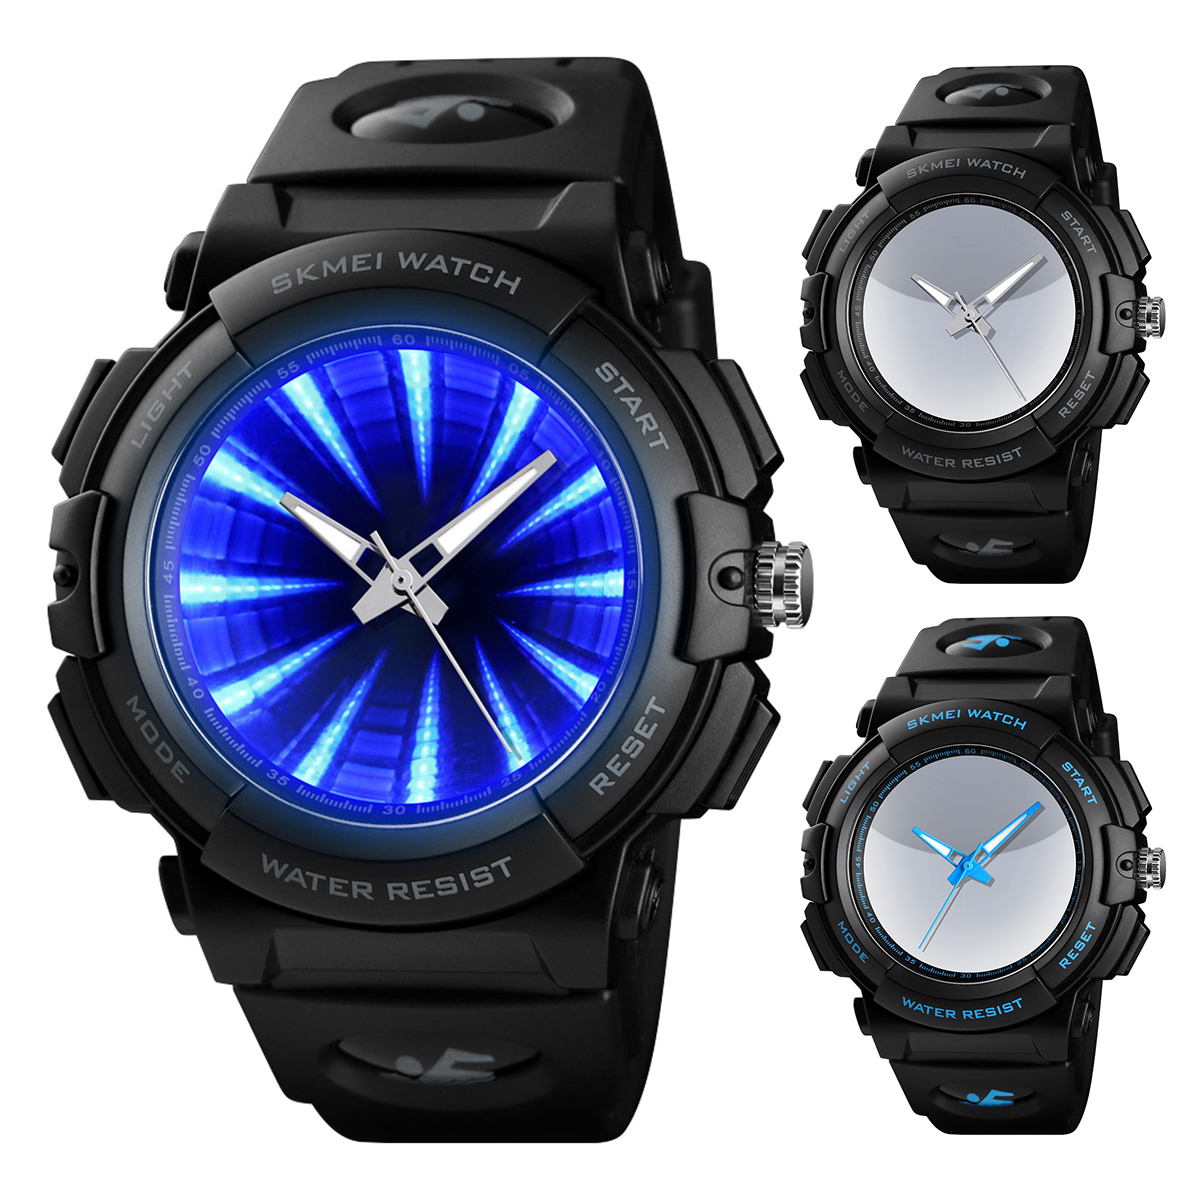 50M Waterproof Cool And Stylish Men Fashion Blue Black LED Backlight Sports Watch Analog Quartz Wrist Watch